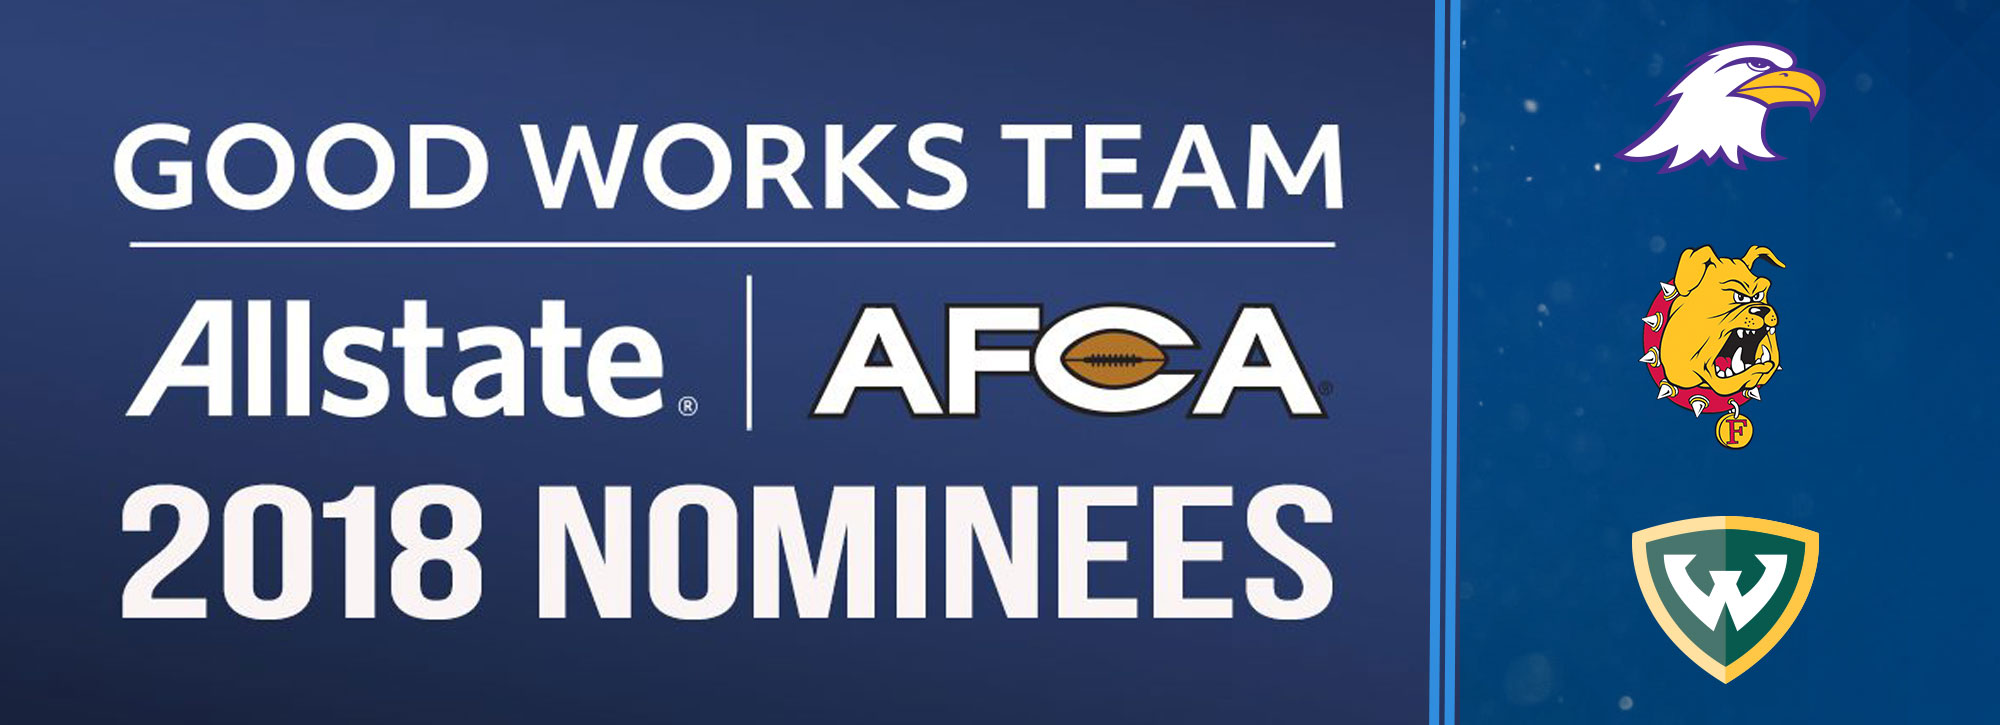 Three GLIAC Student-Athletes Garner Allstate AFCA Good Works Team Nominations